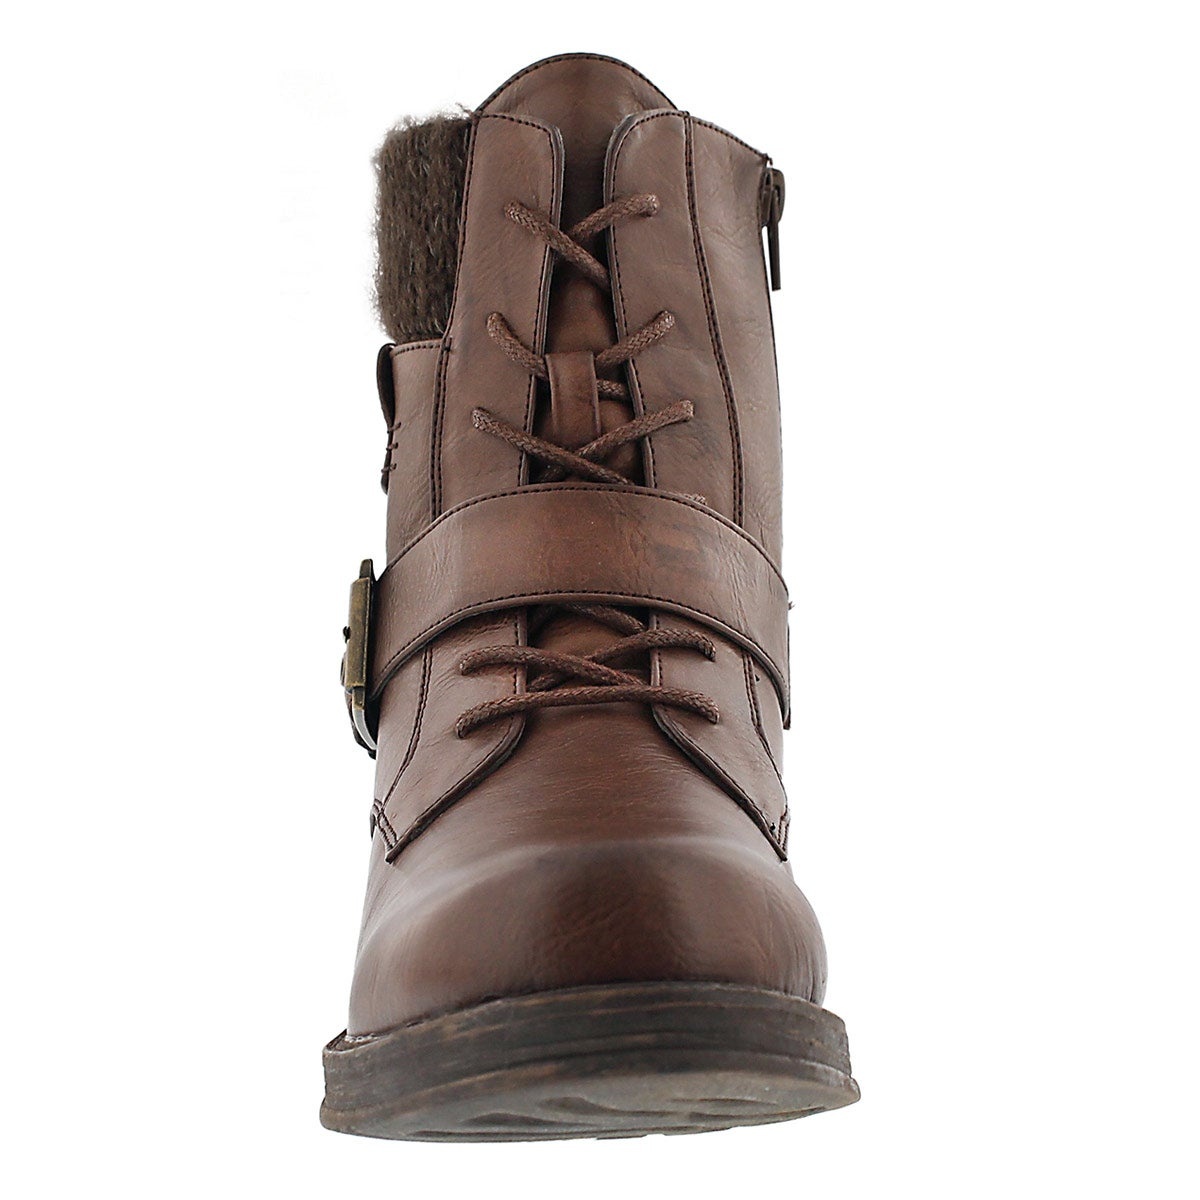 Lds Kiara brn lace up casual boot